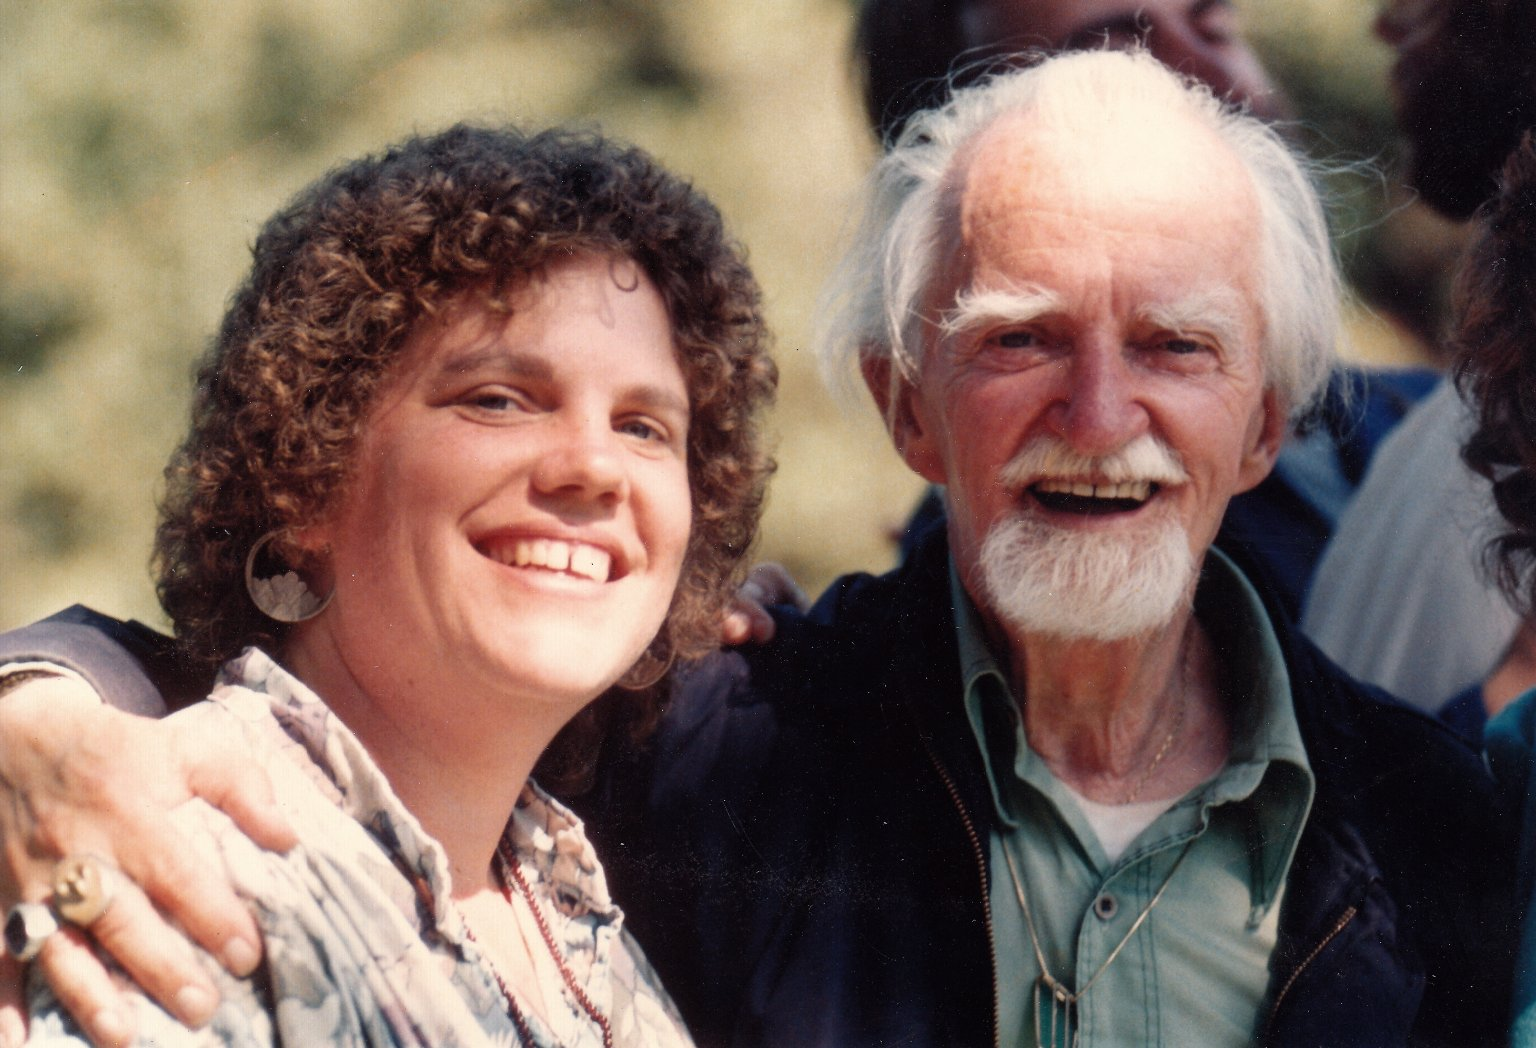 Counter-culture spiritual teacher, Joe Miller with an unidentified woman.